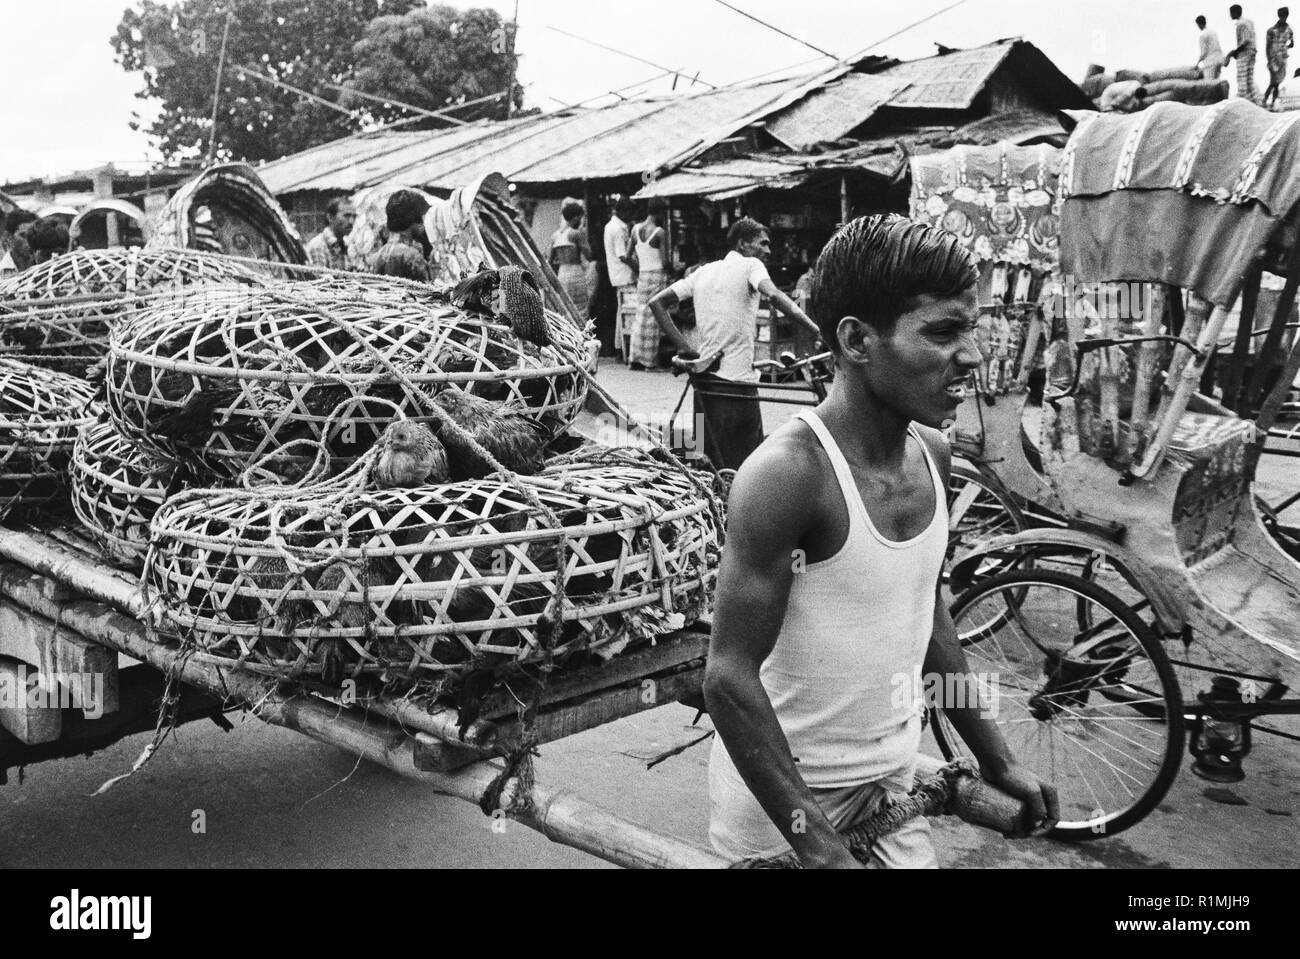 6/6 Transporting poultry by hand cart  Dhaka 1980 - Stock Image